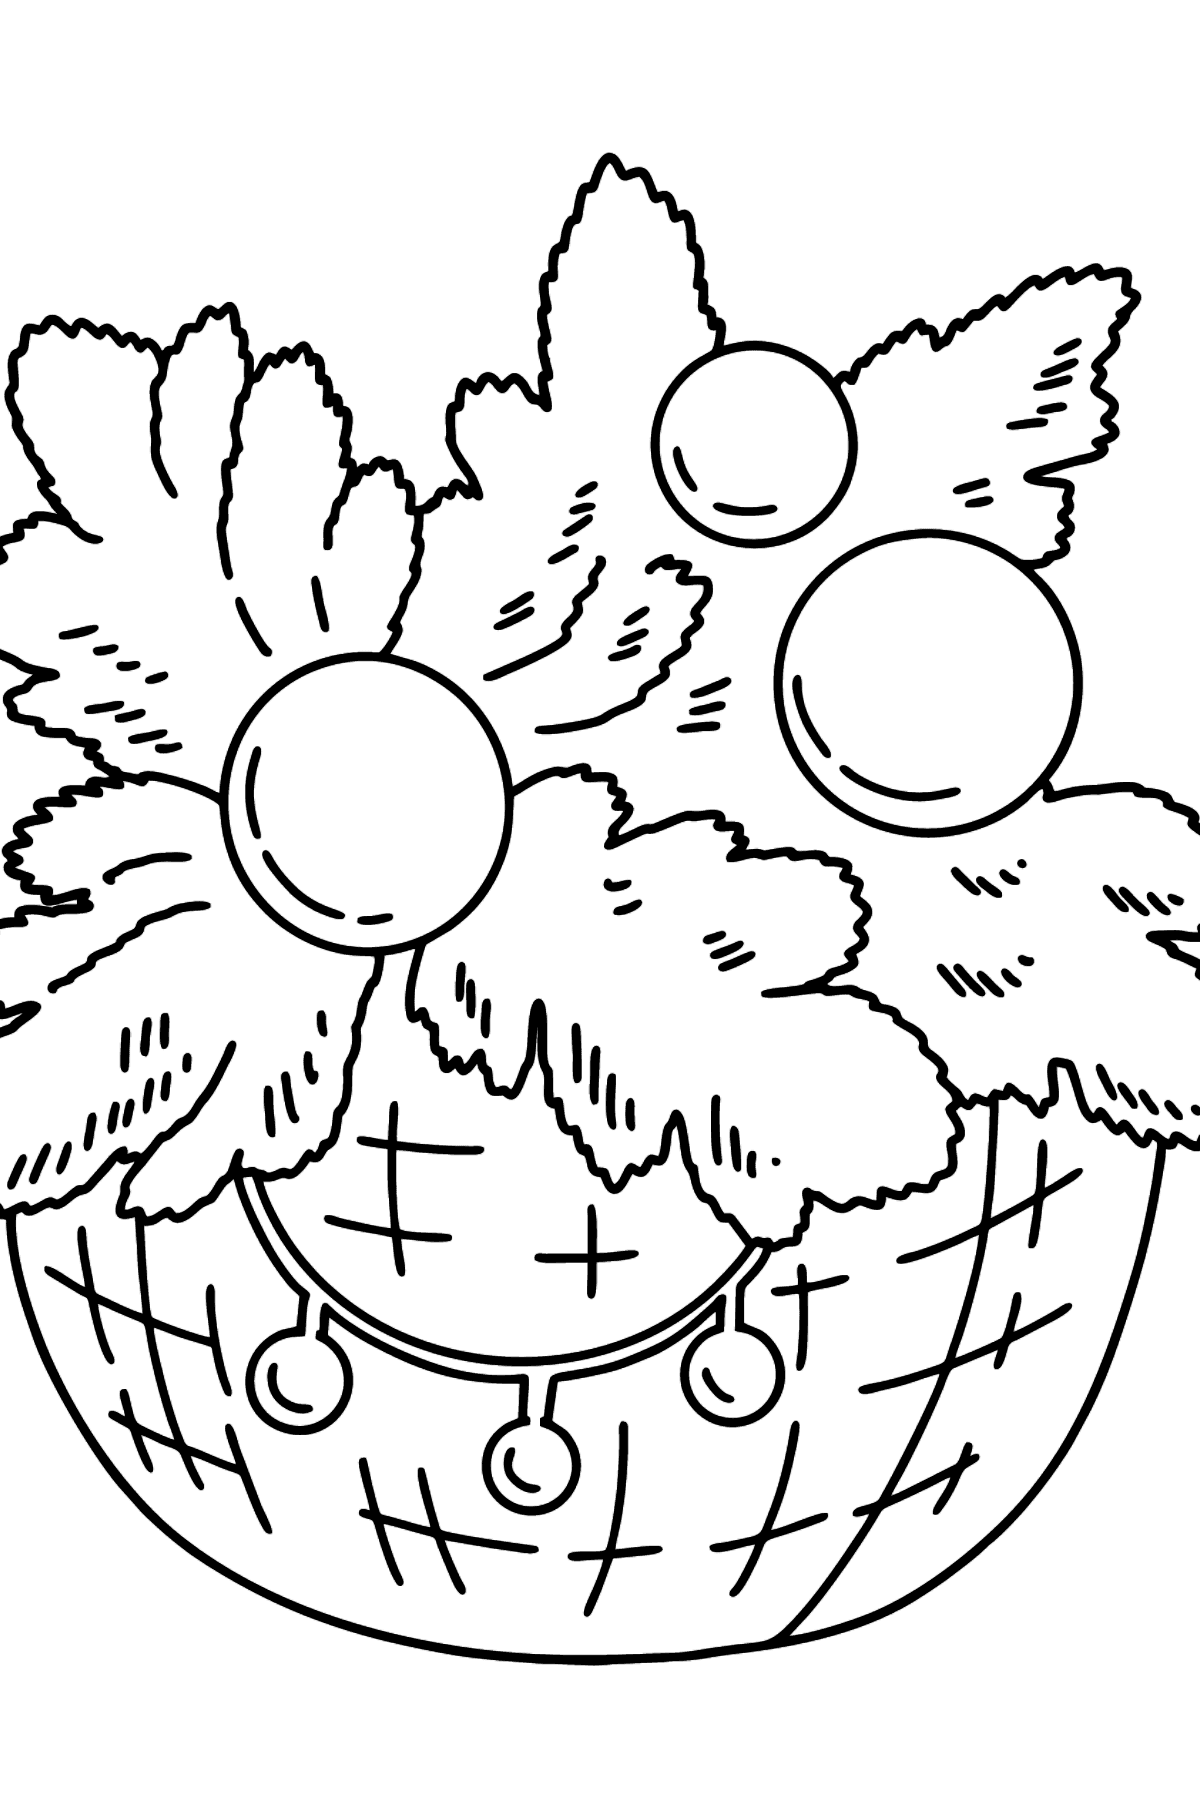 Christmas Branch coloring page - Coloring Pages for Kids